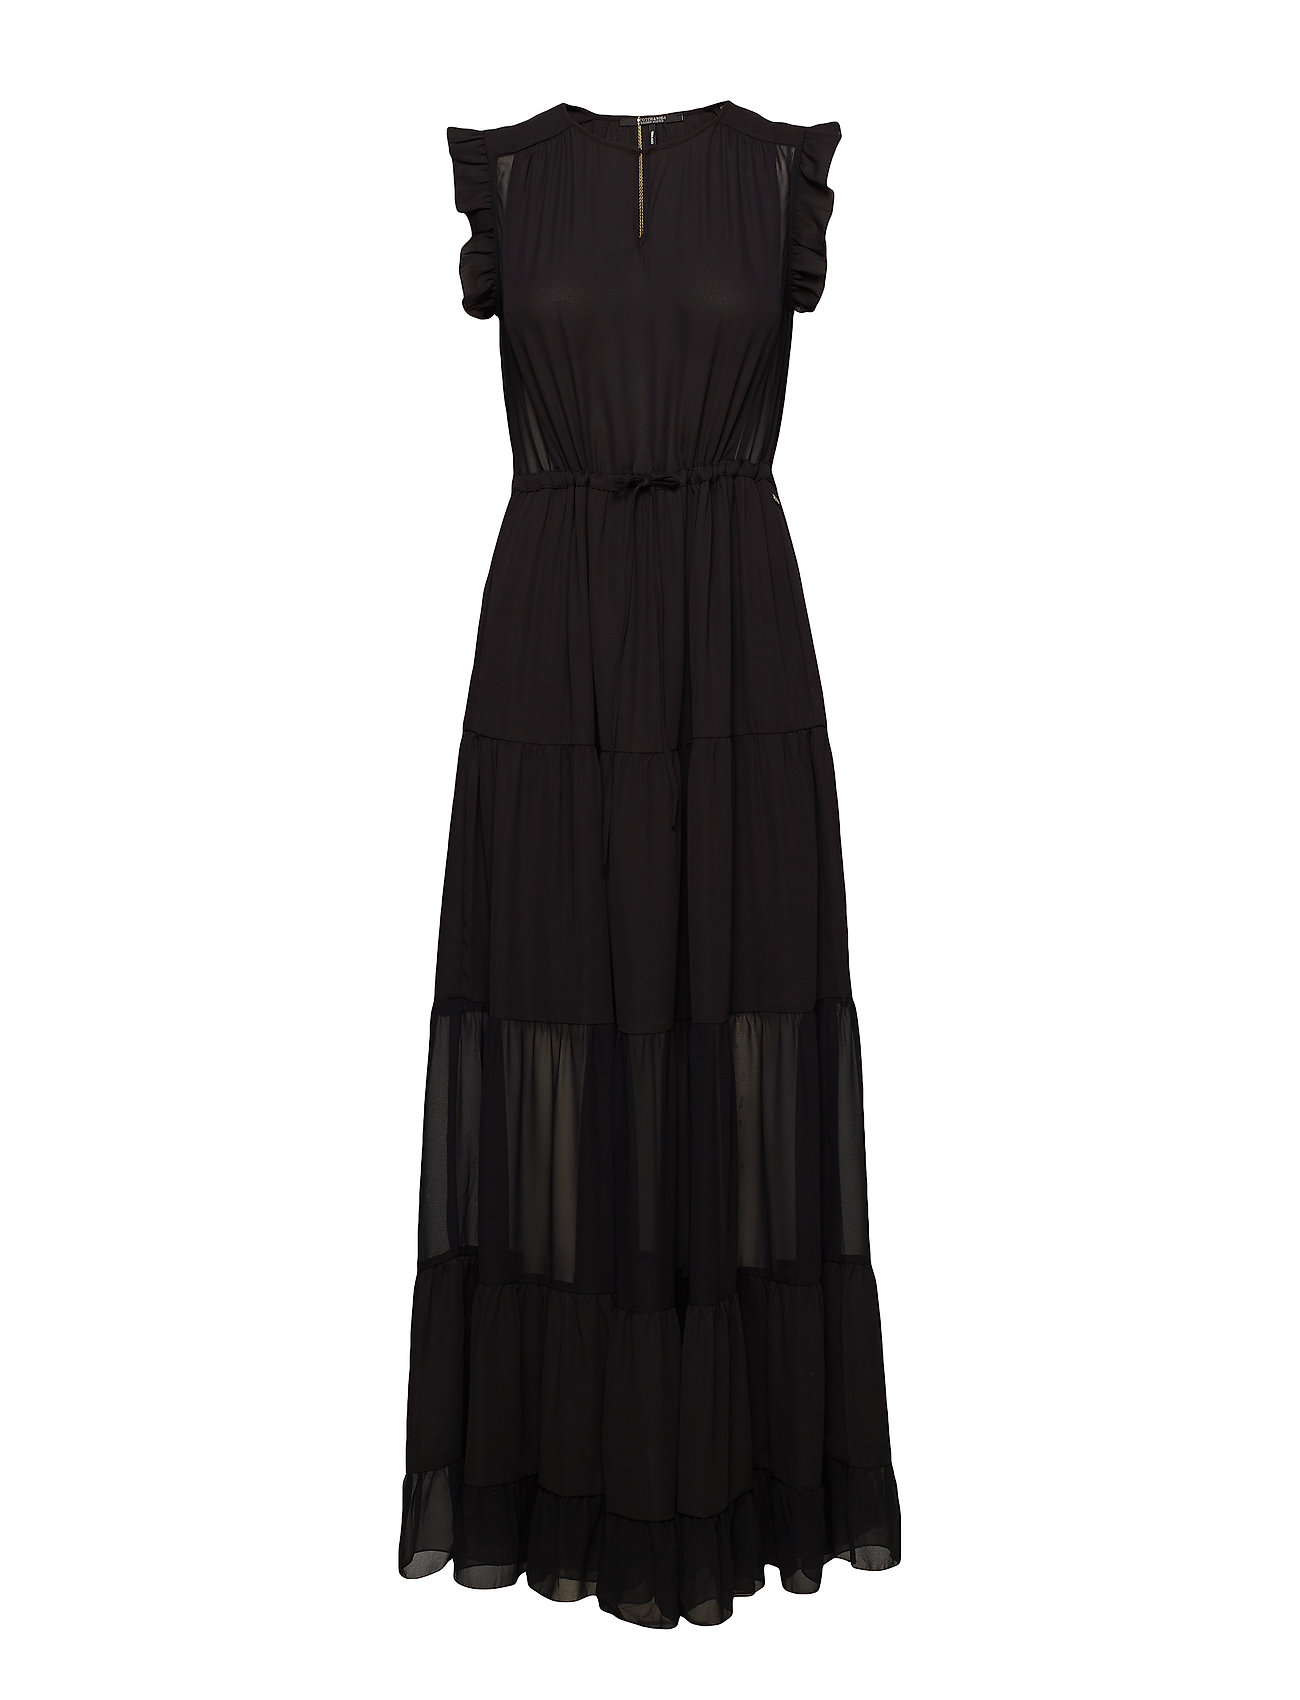 Scotch & Soda Tiered maxi dress with sheer inserts